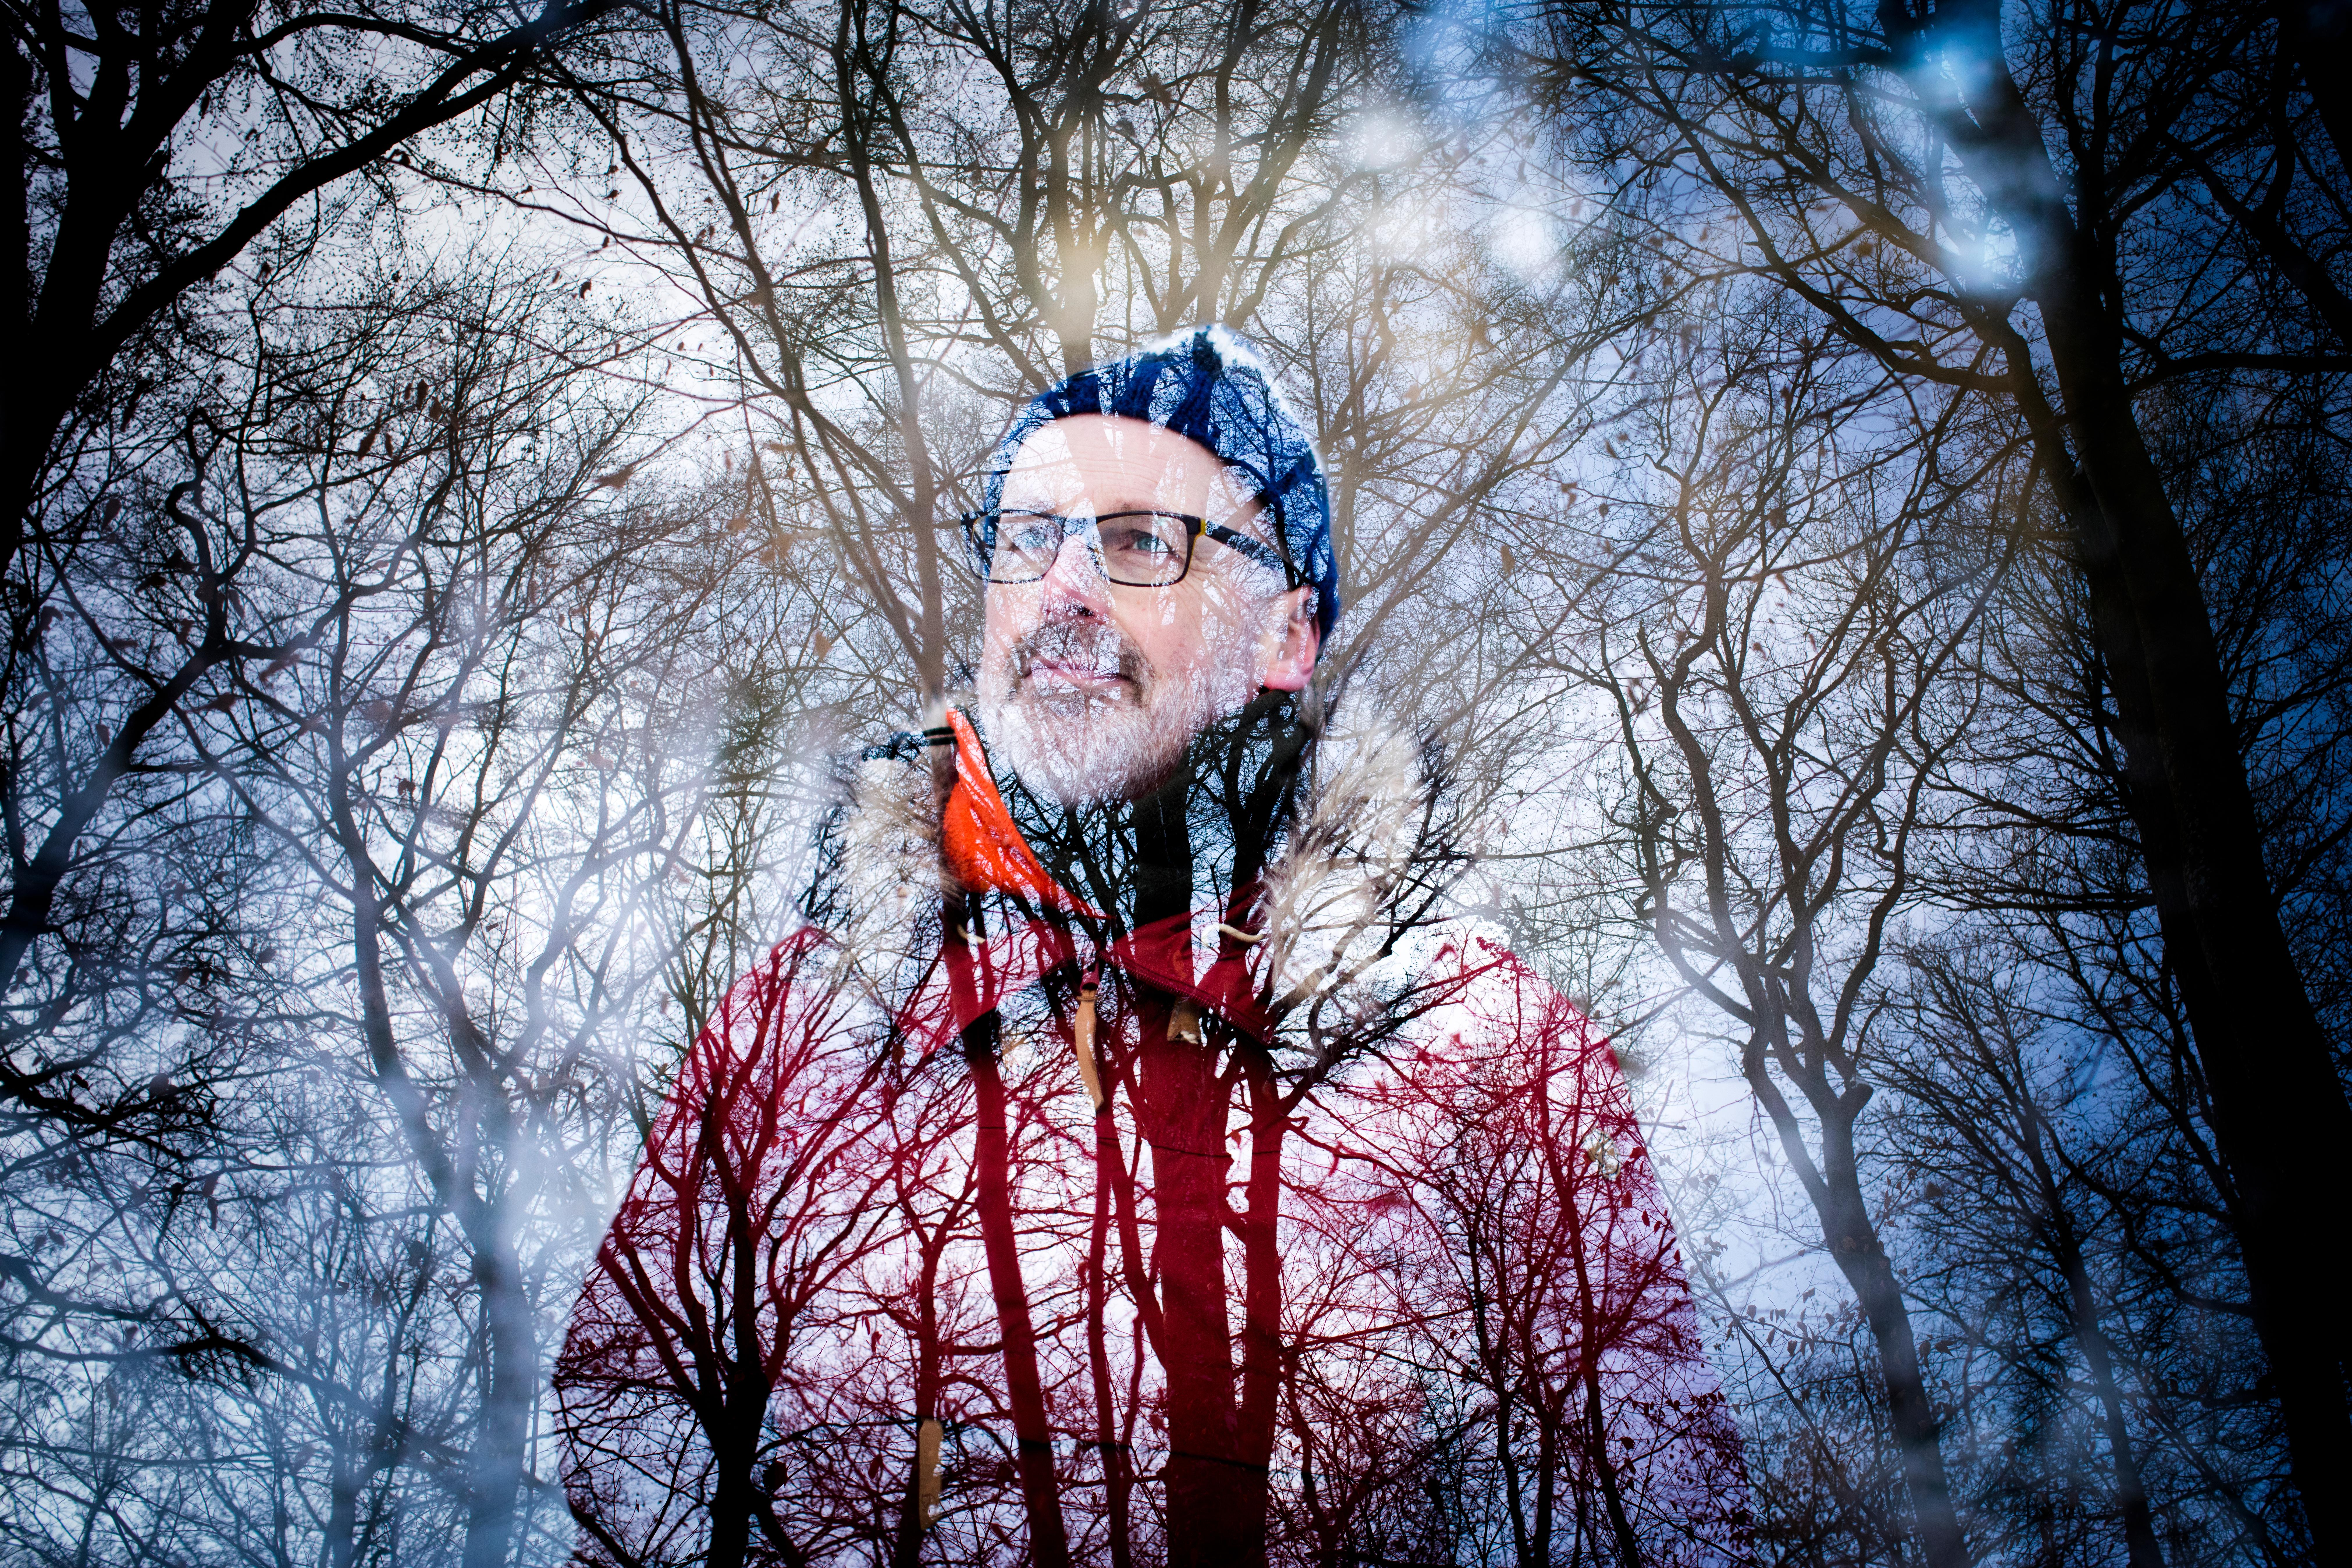 Wohlleben sees a forest as a superorganism